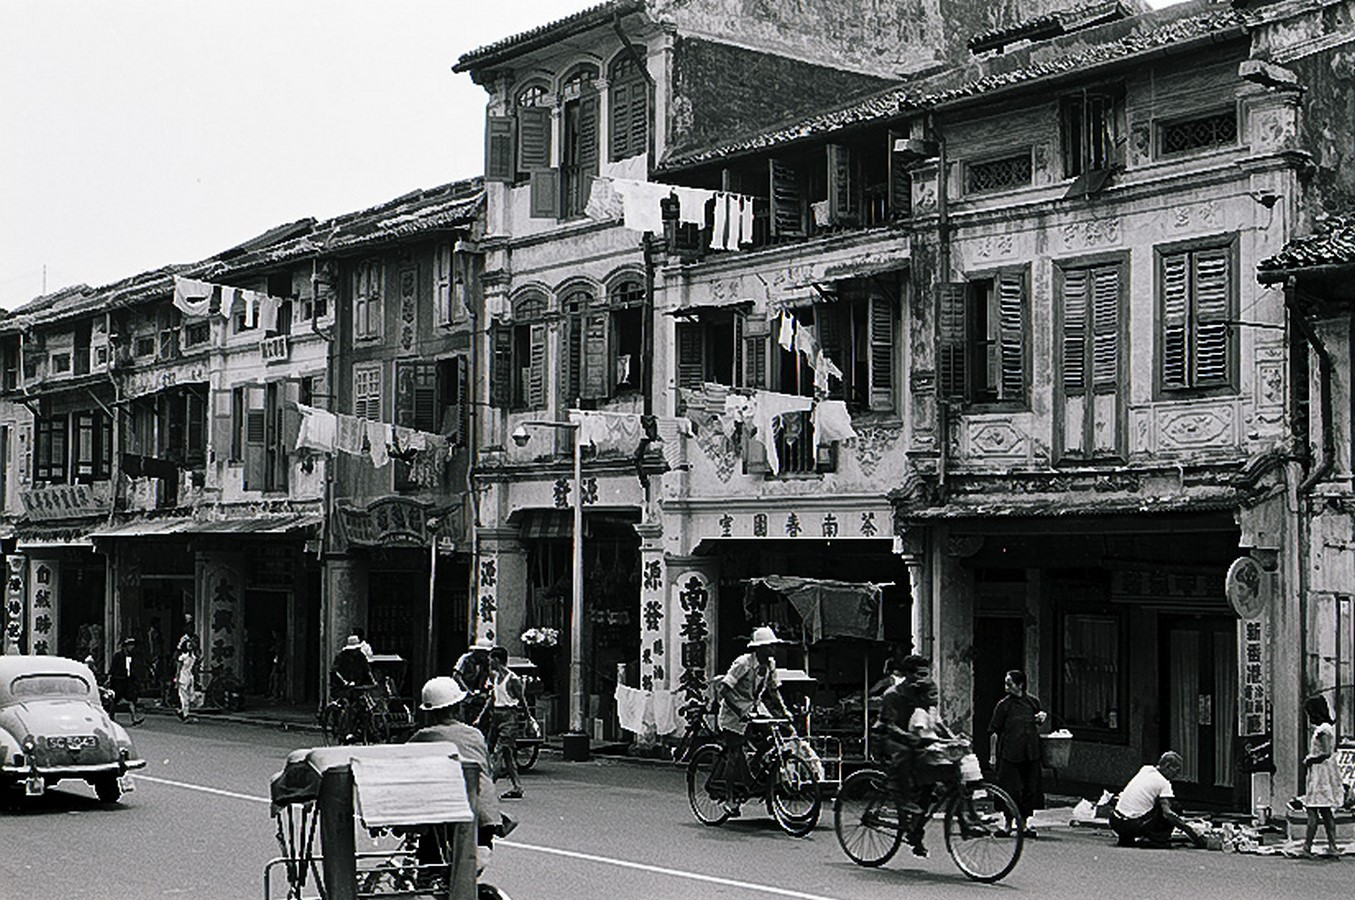 Architecture in Singapore- Shophouses - Sheet2